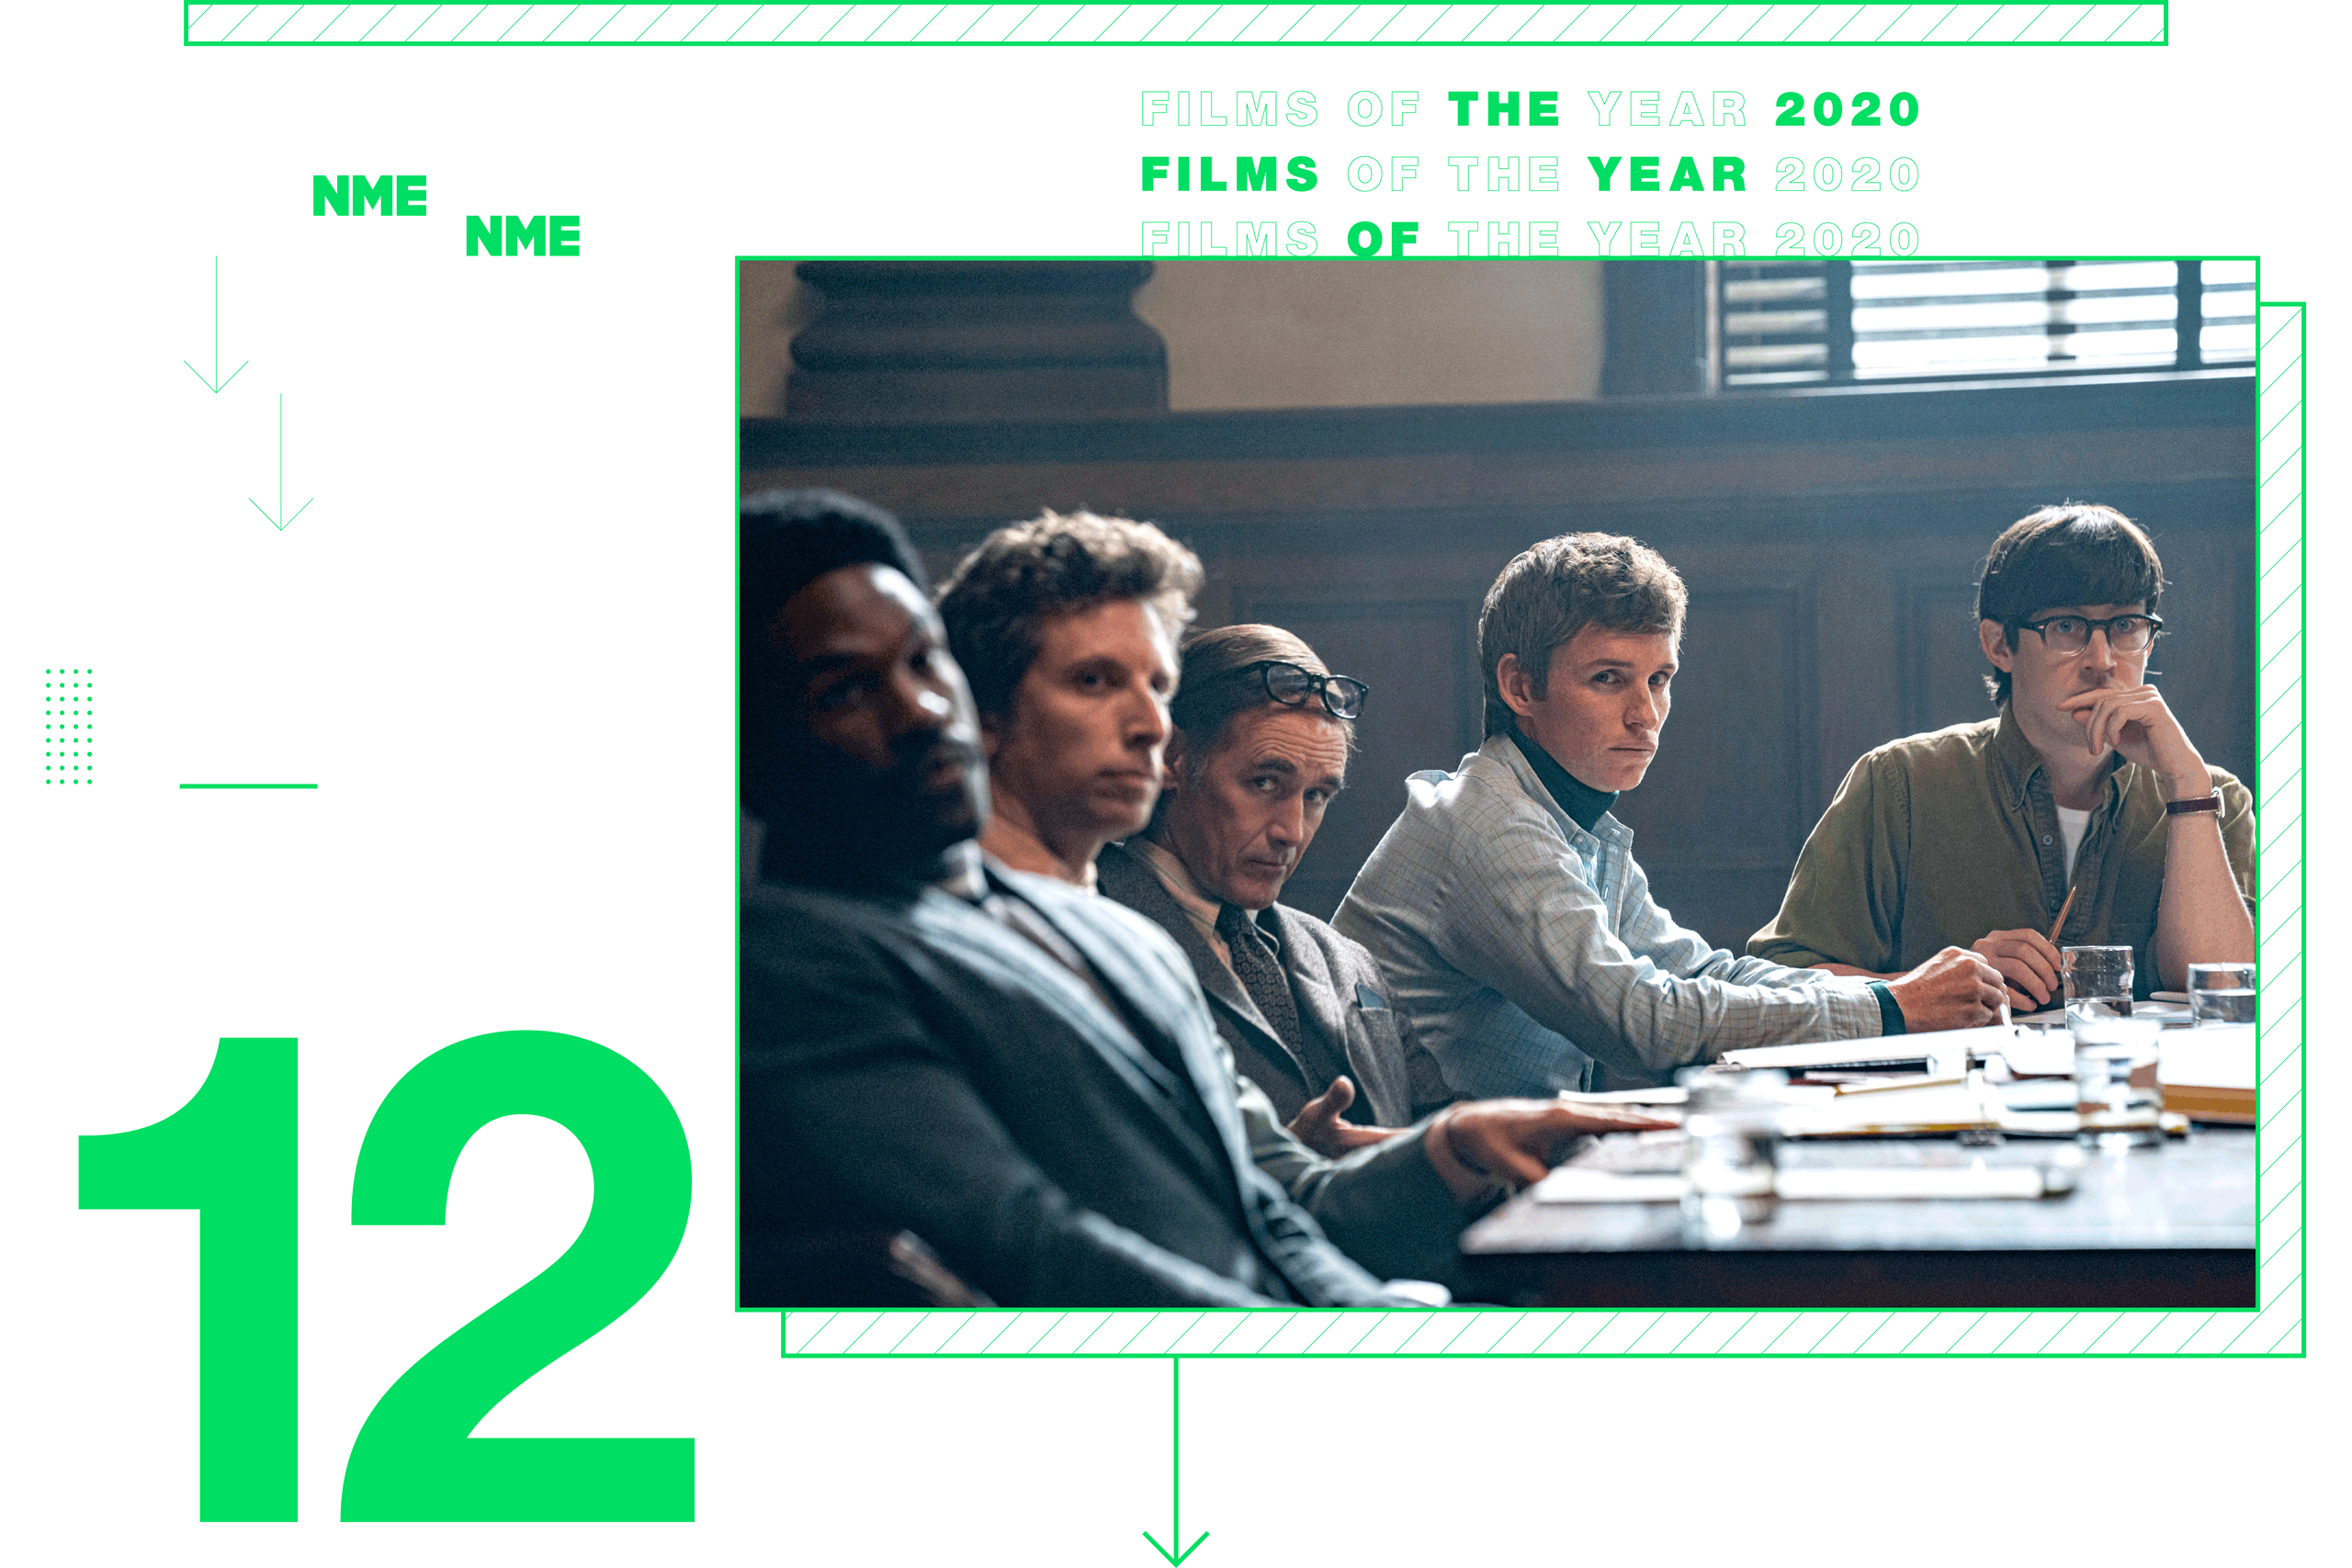 NME Global Films of the Year The Trial Of The Chicago 7